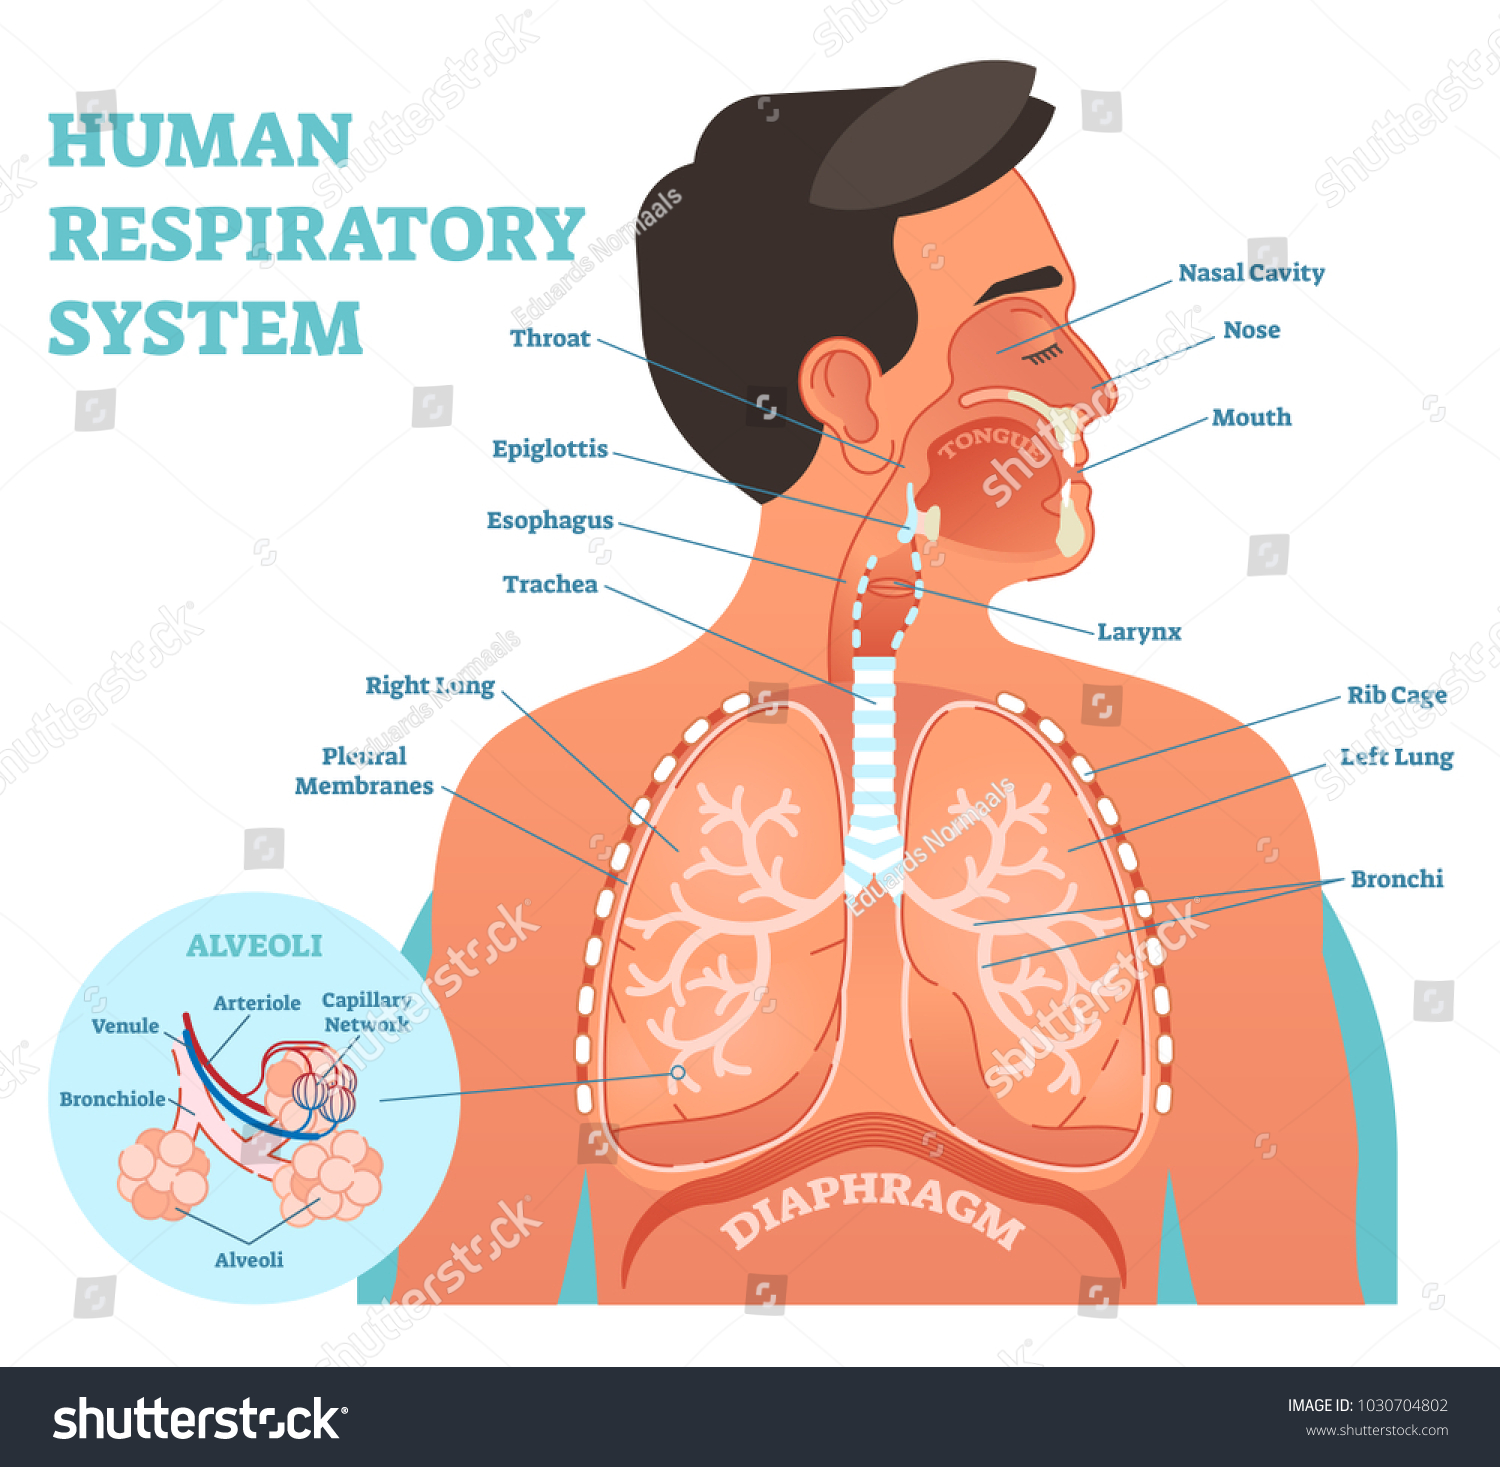 Human Respiratory System Anatomical Vector Illustration Stock Vector ...